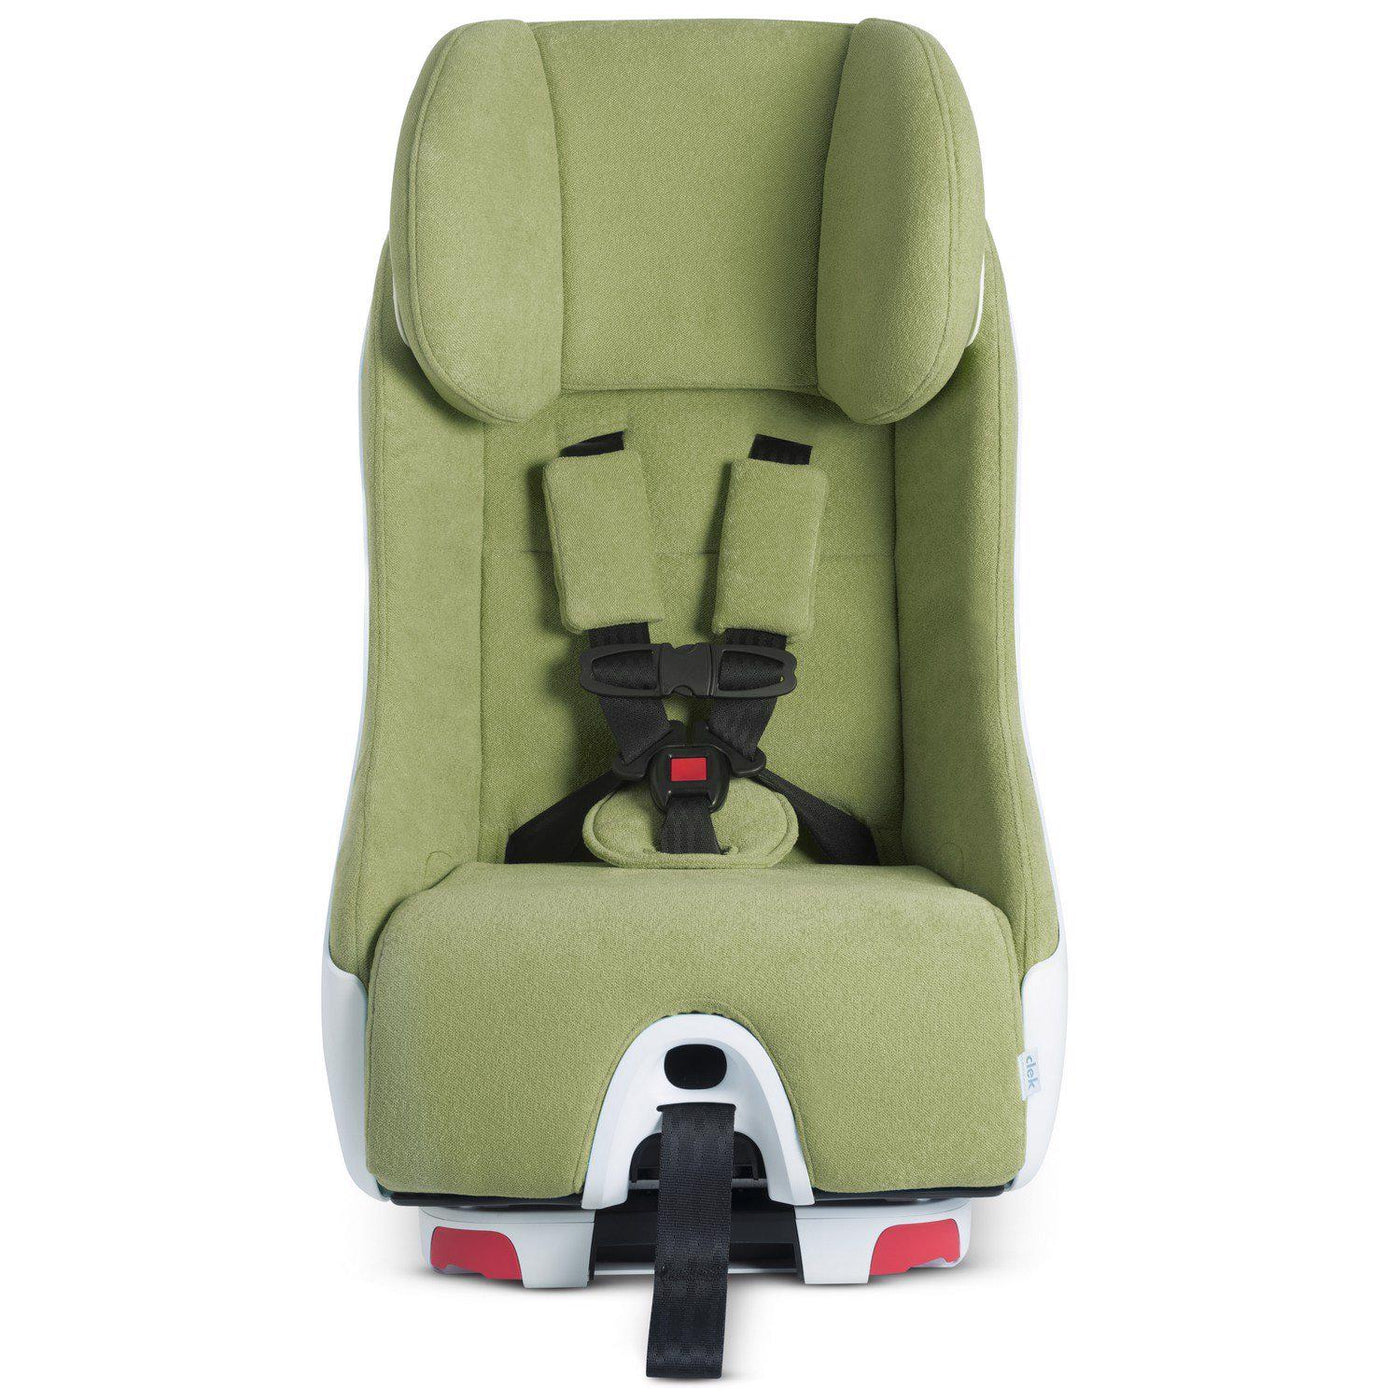 Foonf Car Seat >> Clek Foonf Convertible Car Seat For Toddlers Shadow Black Black